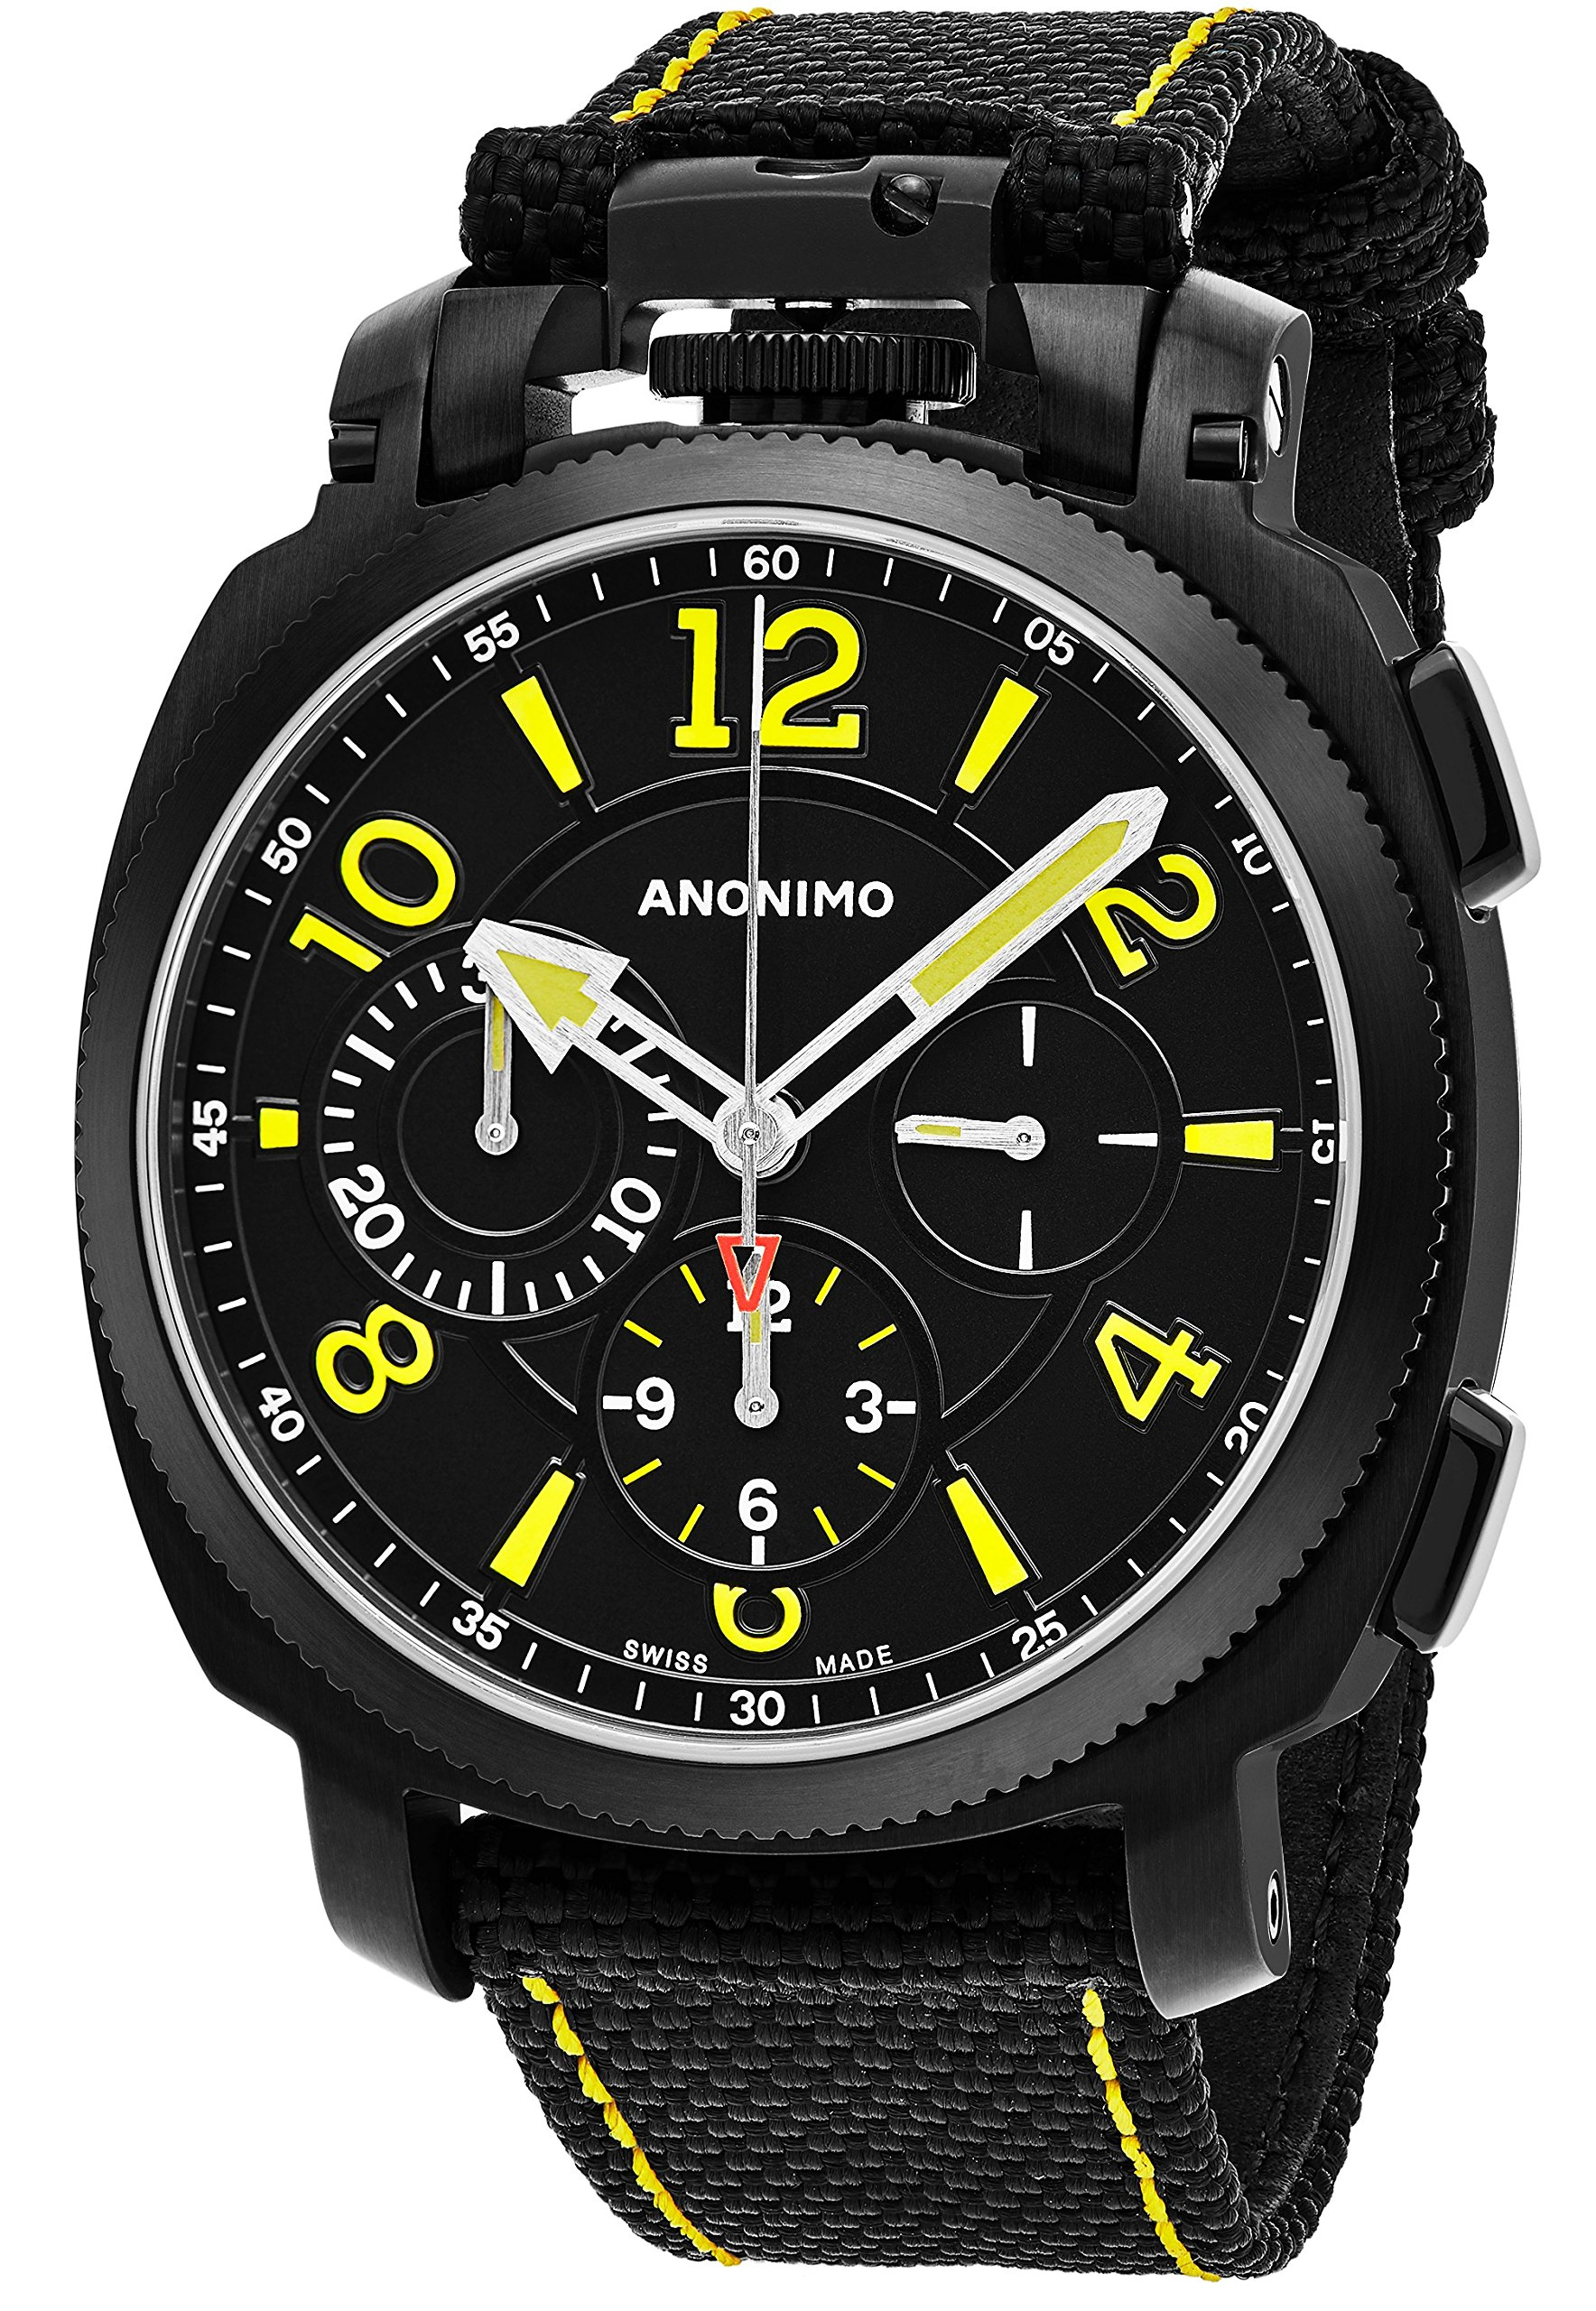 Anonimo Mens Military 43 MM Black Face Black Canvas/Leather Strap Chronograph Swiss Mechanical Watch AM110002004A01 by Anonimo